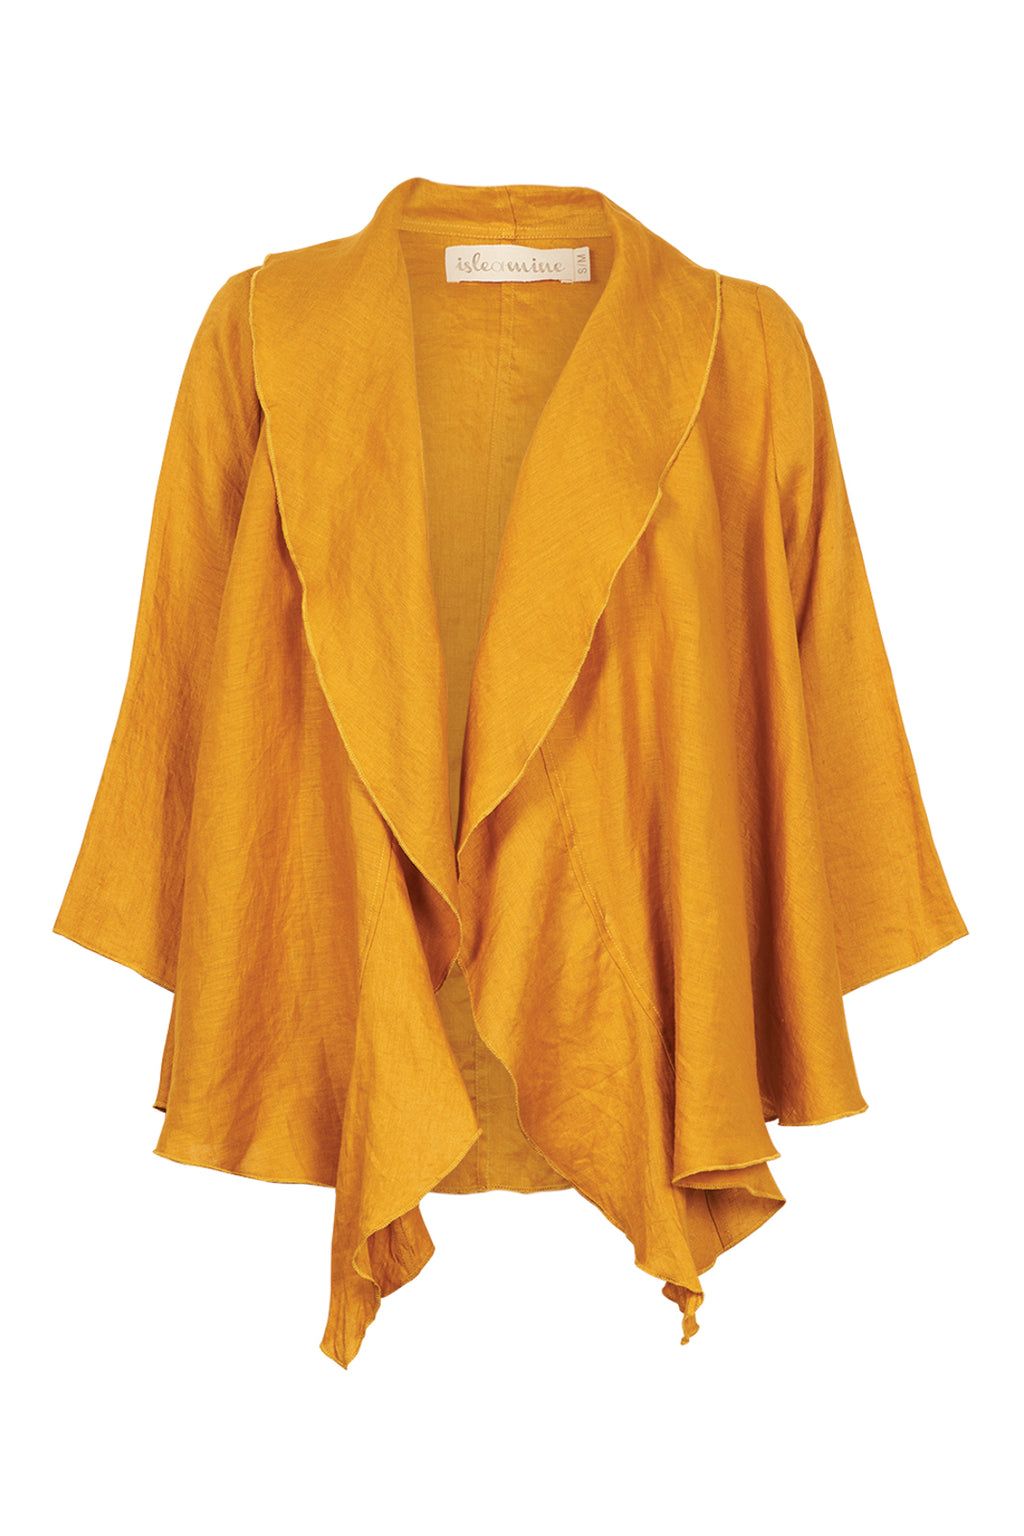 Eve Jacket - Saffron - Isle of Mine Clothing - Jacket Relaxed